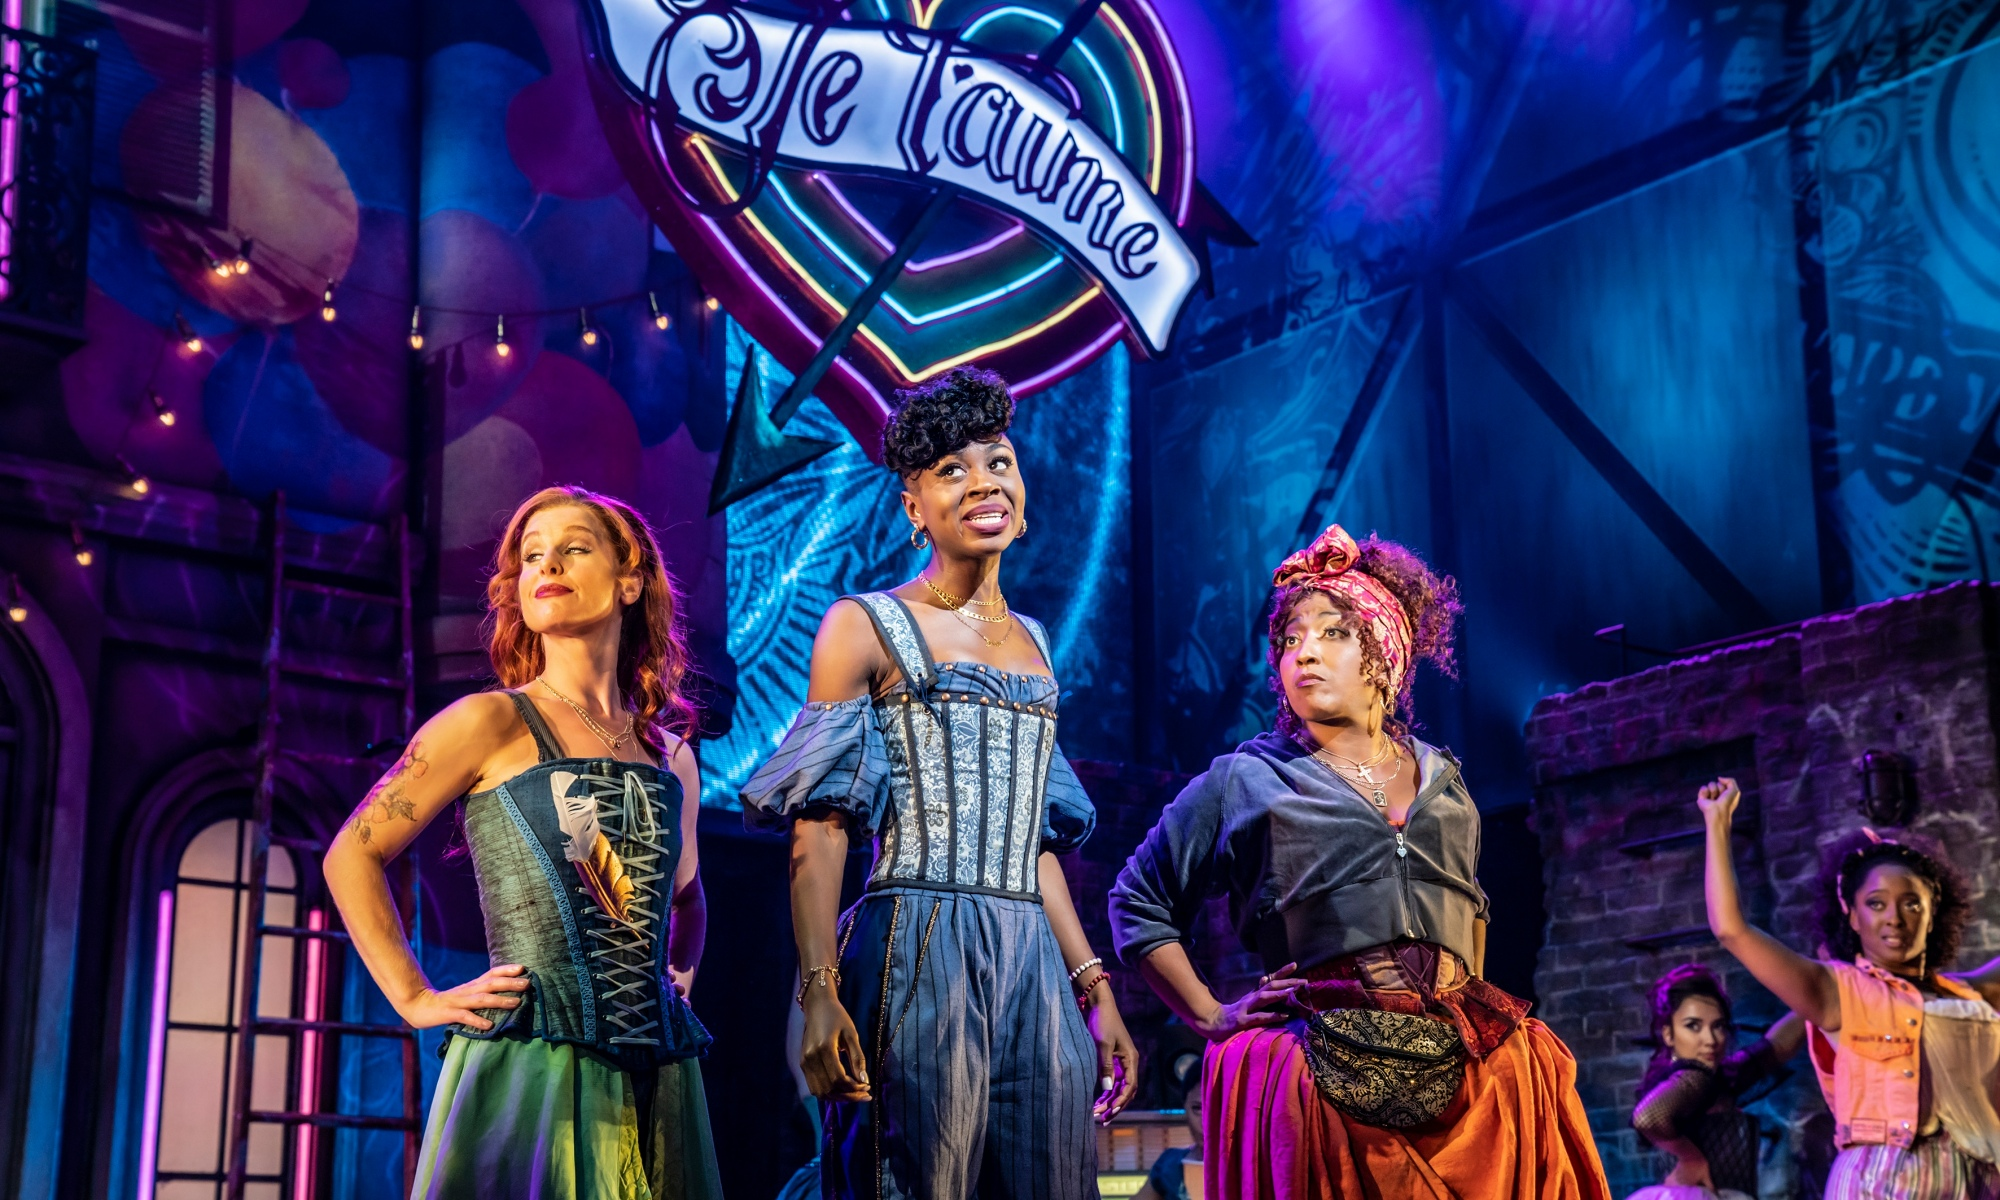 Three women in Shakespearean dress, in bright colours, look at someone to the right of them off-camera. A neon sign of a love heart is in the air with the words 'Je t'aime' inside it.